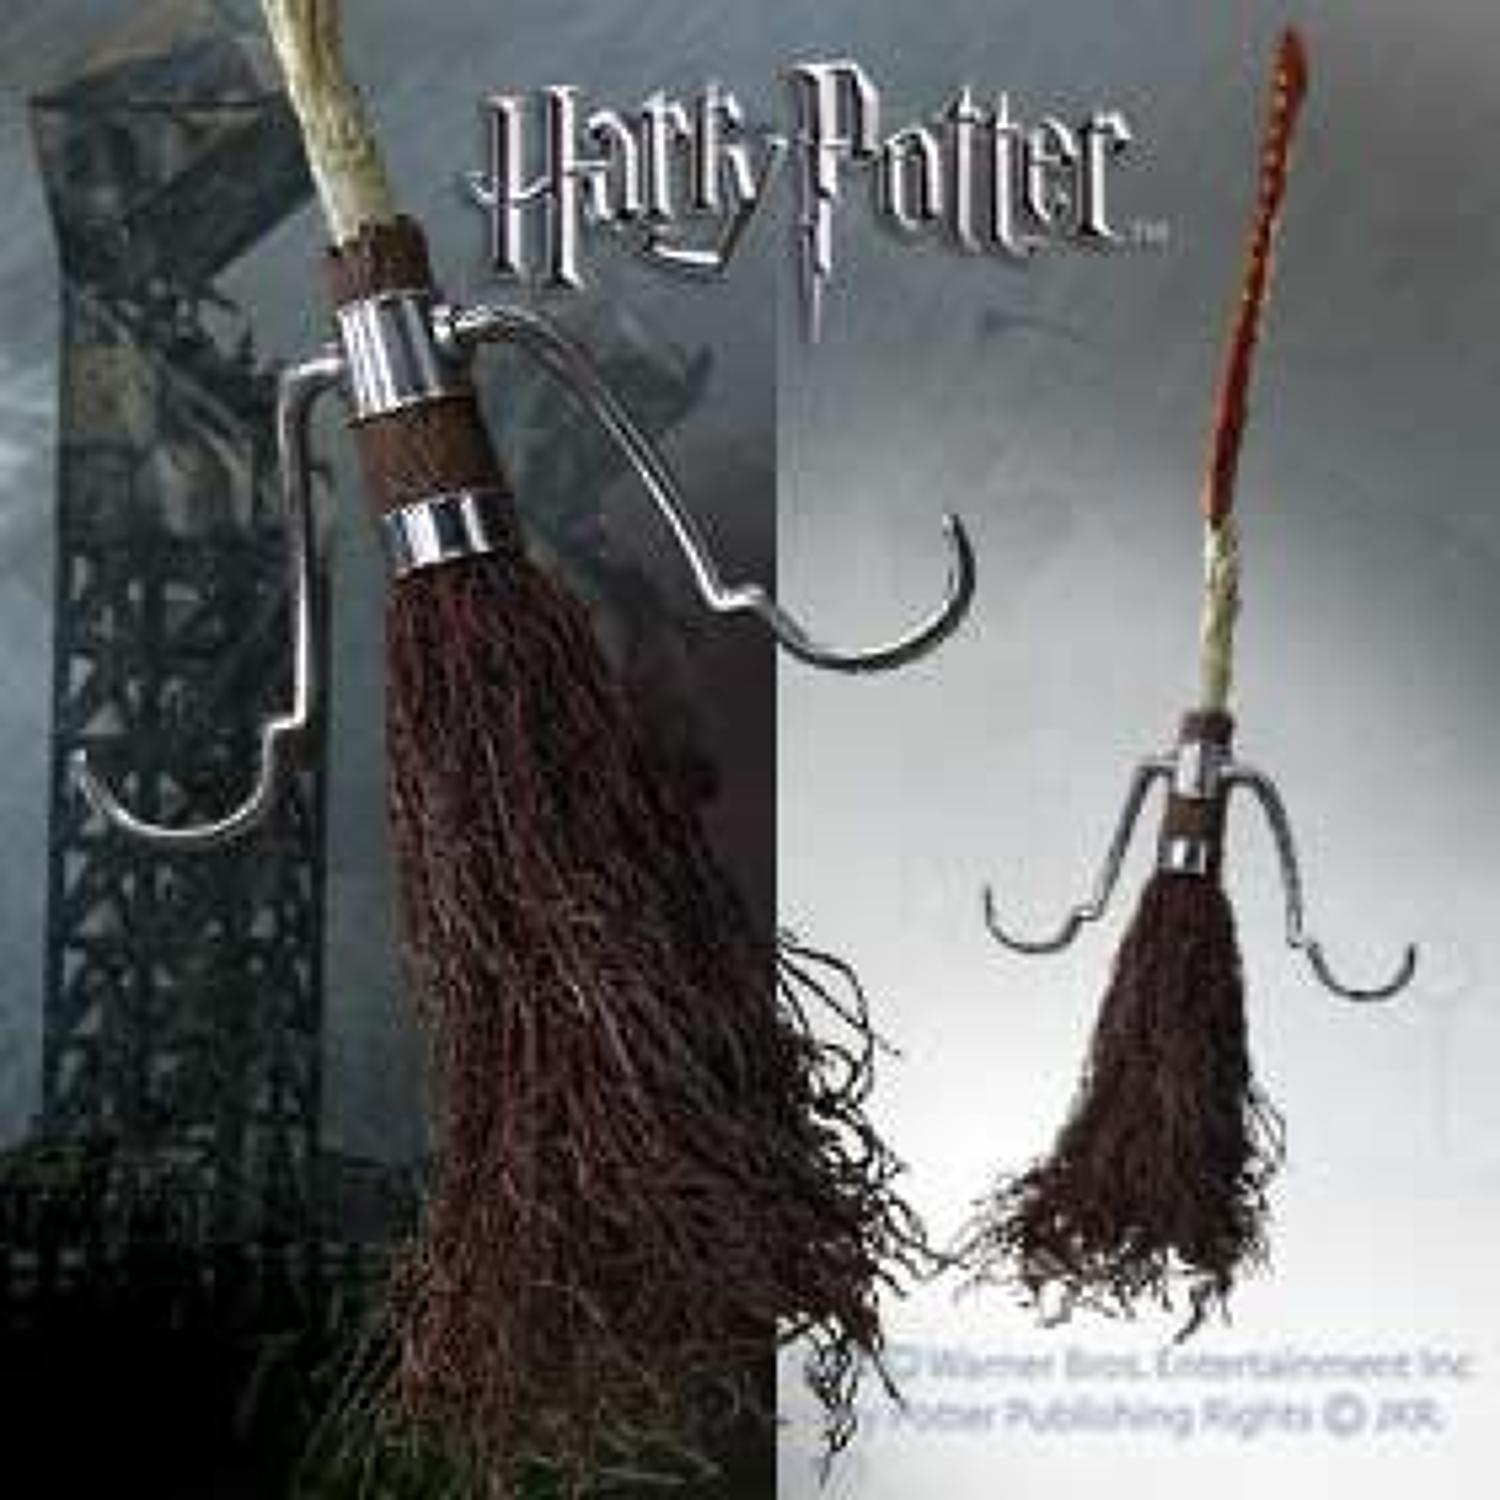 Harry Potter - Firebolt Broomstick Replica